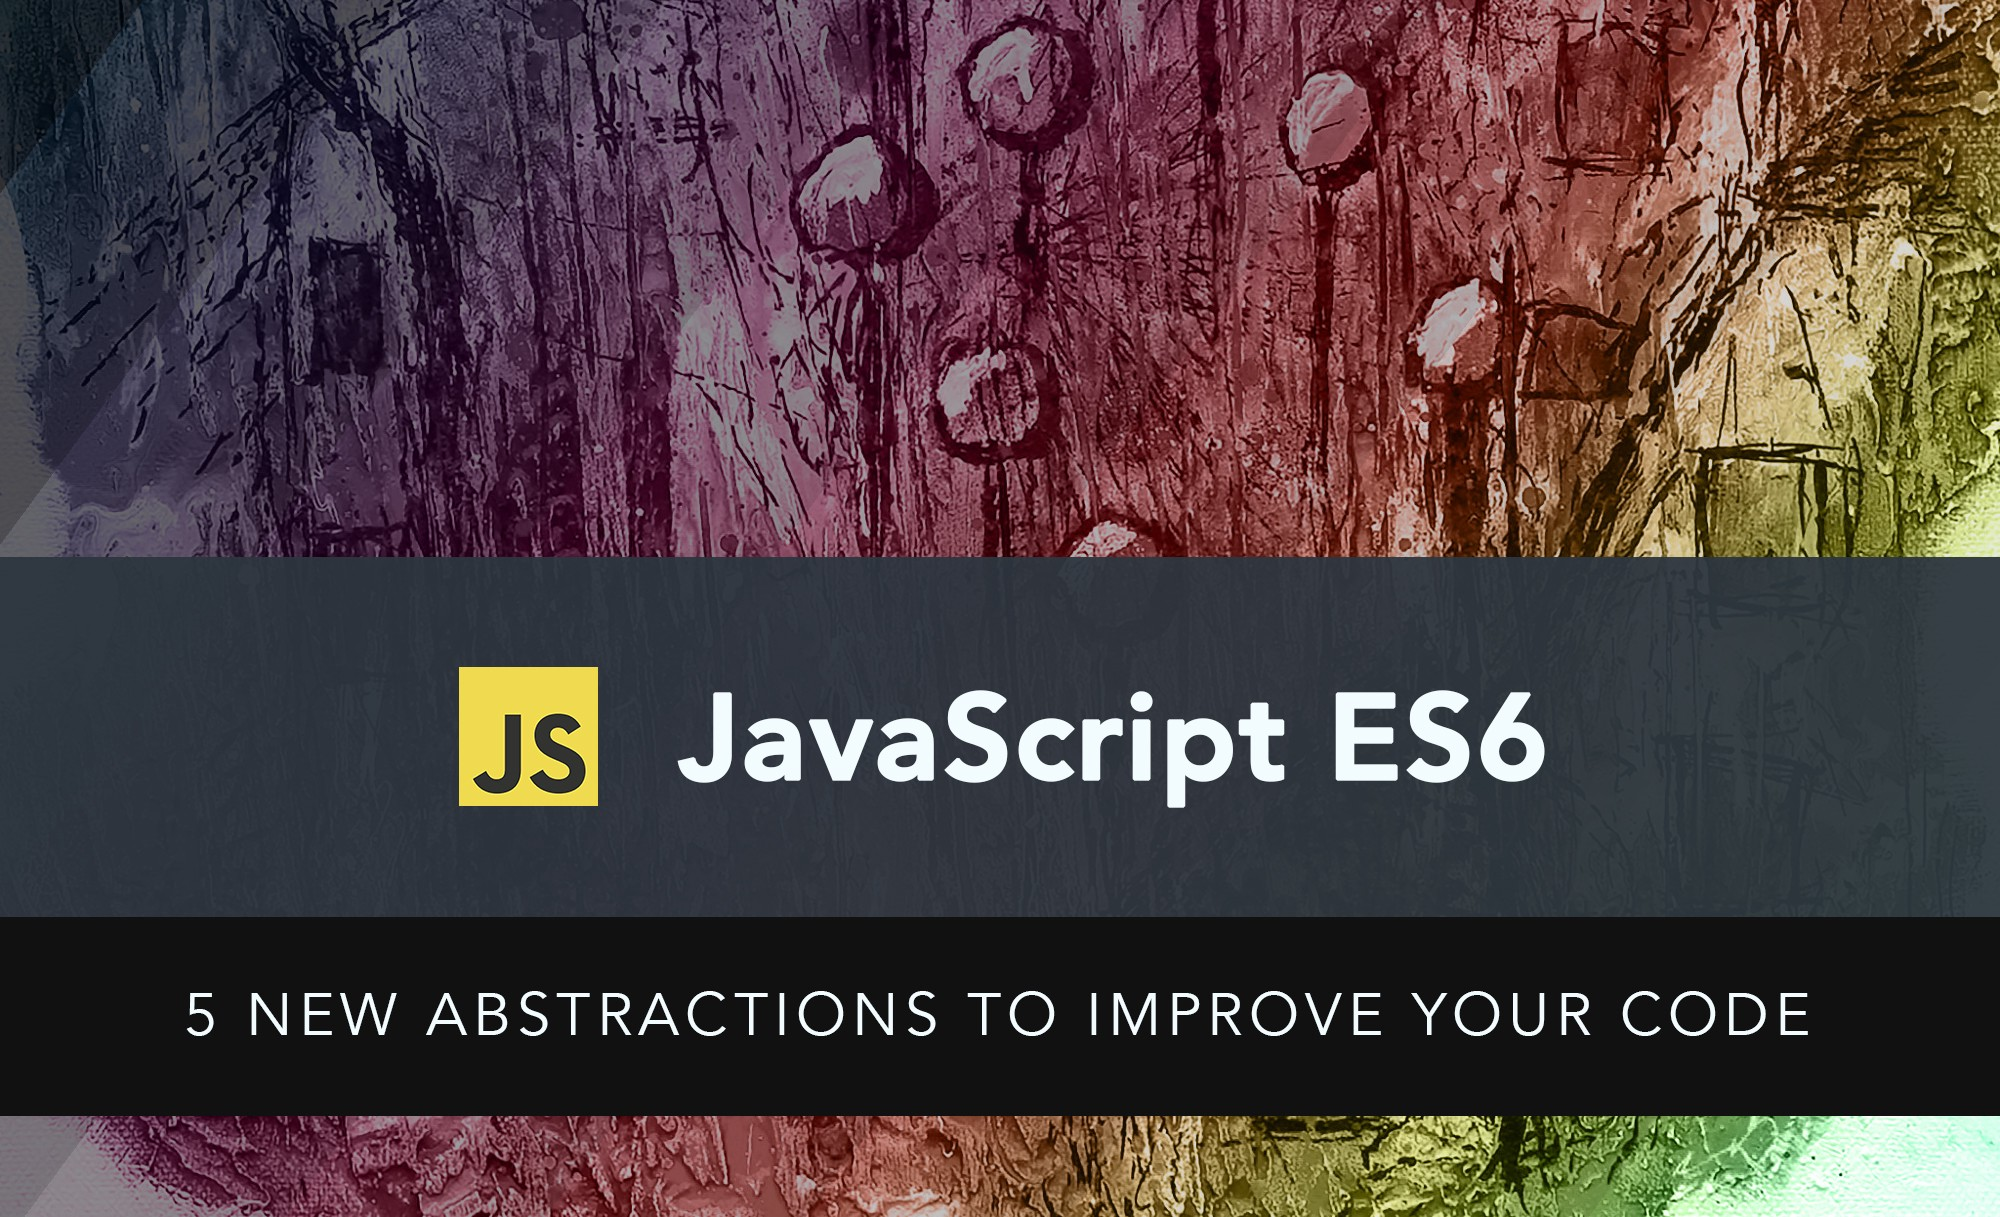 JavaScript ES6: 5 new abstractions to improve your code - LogRocket Blog